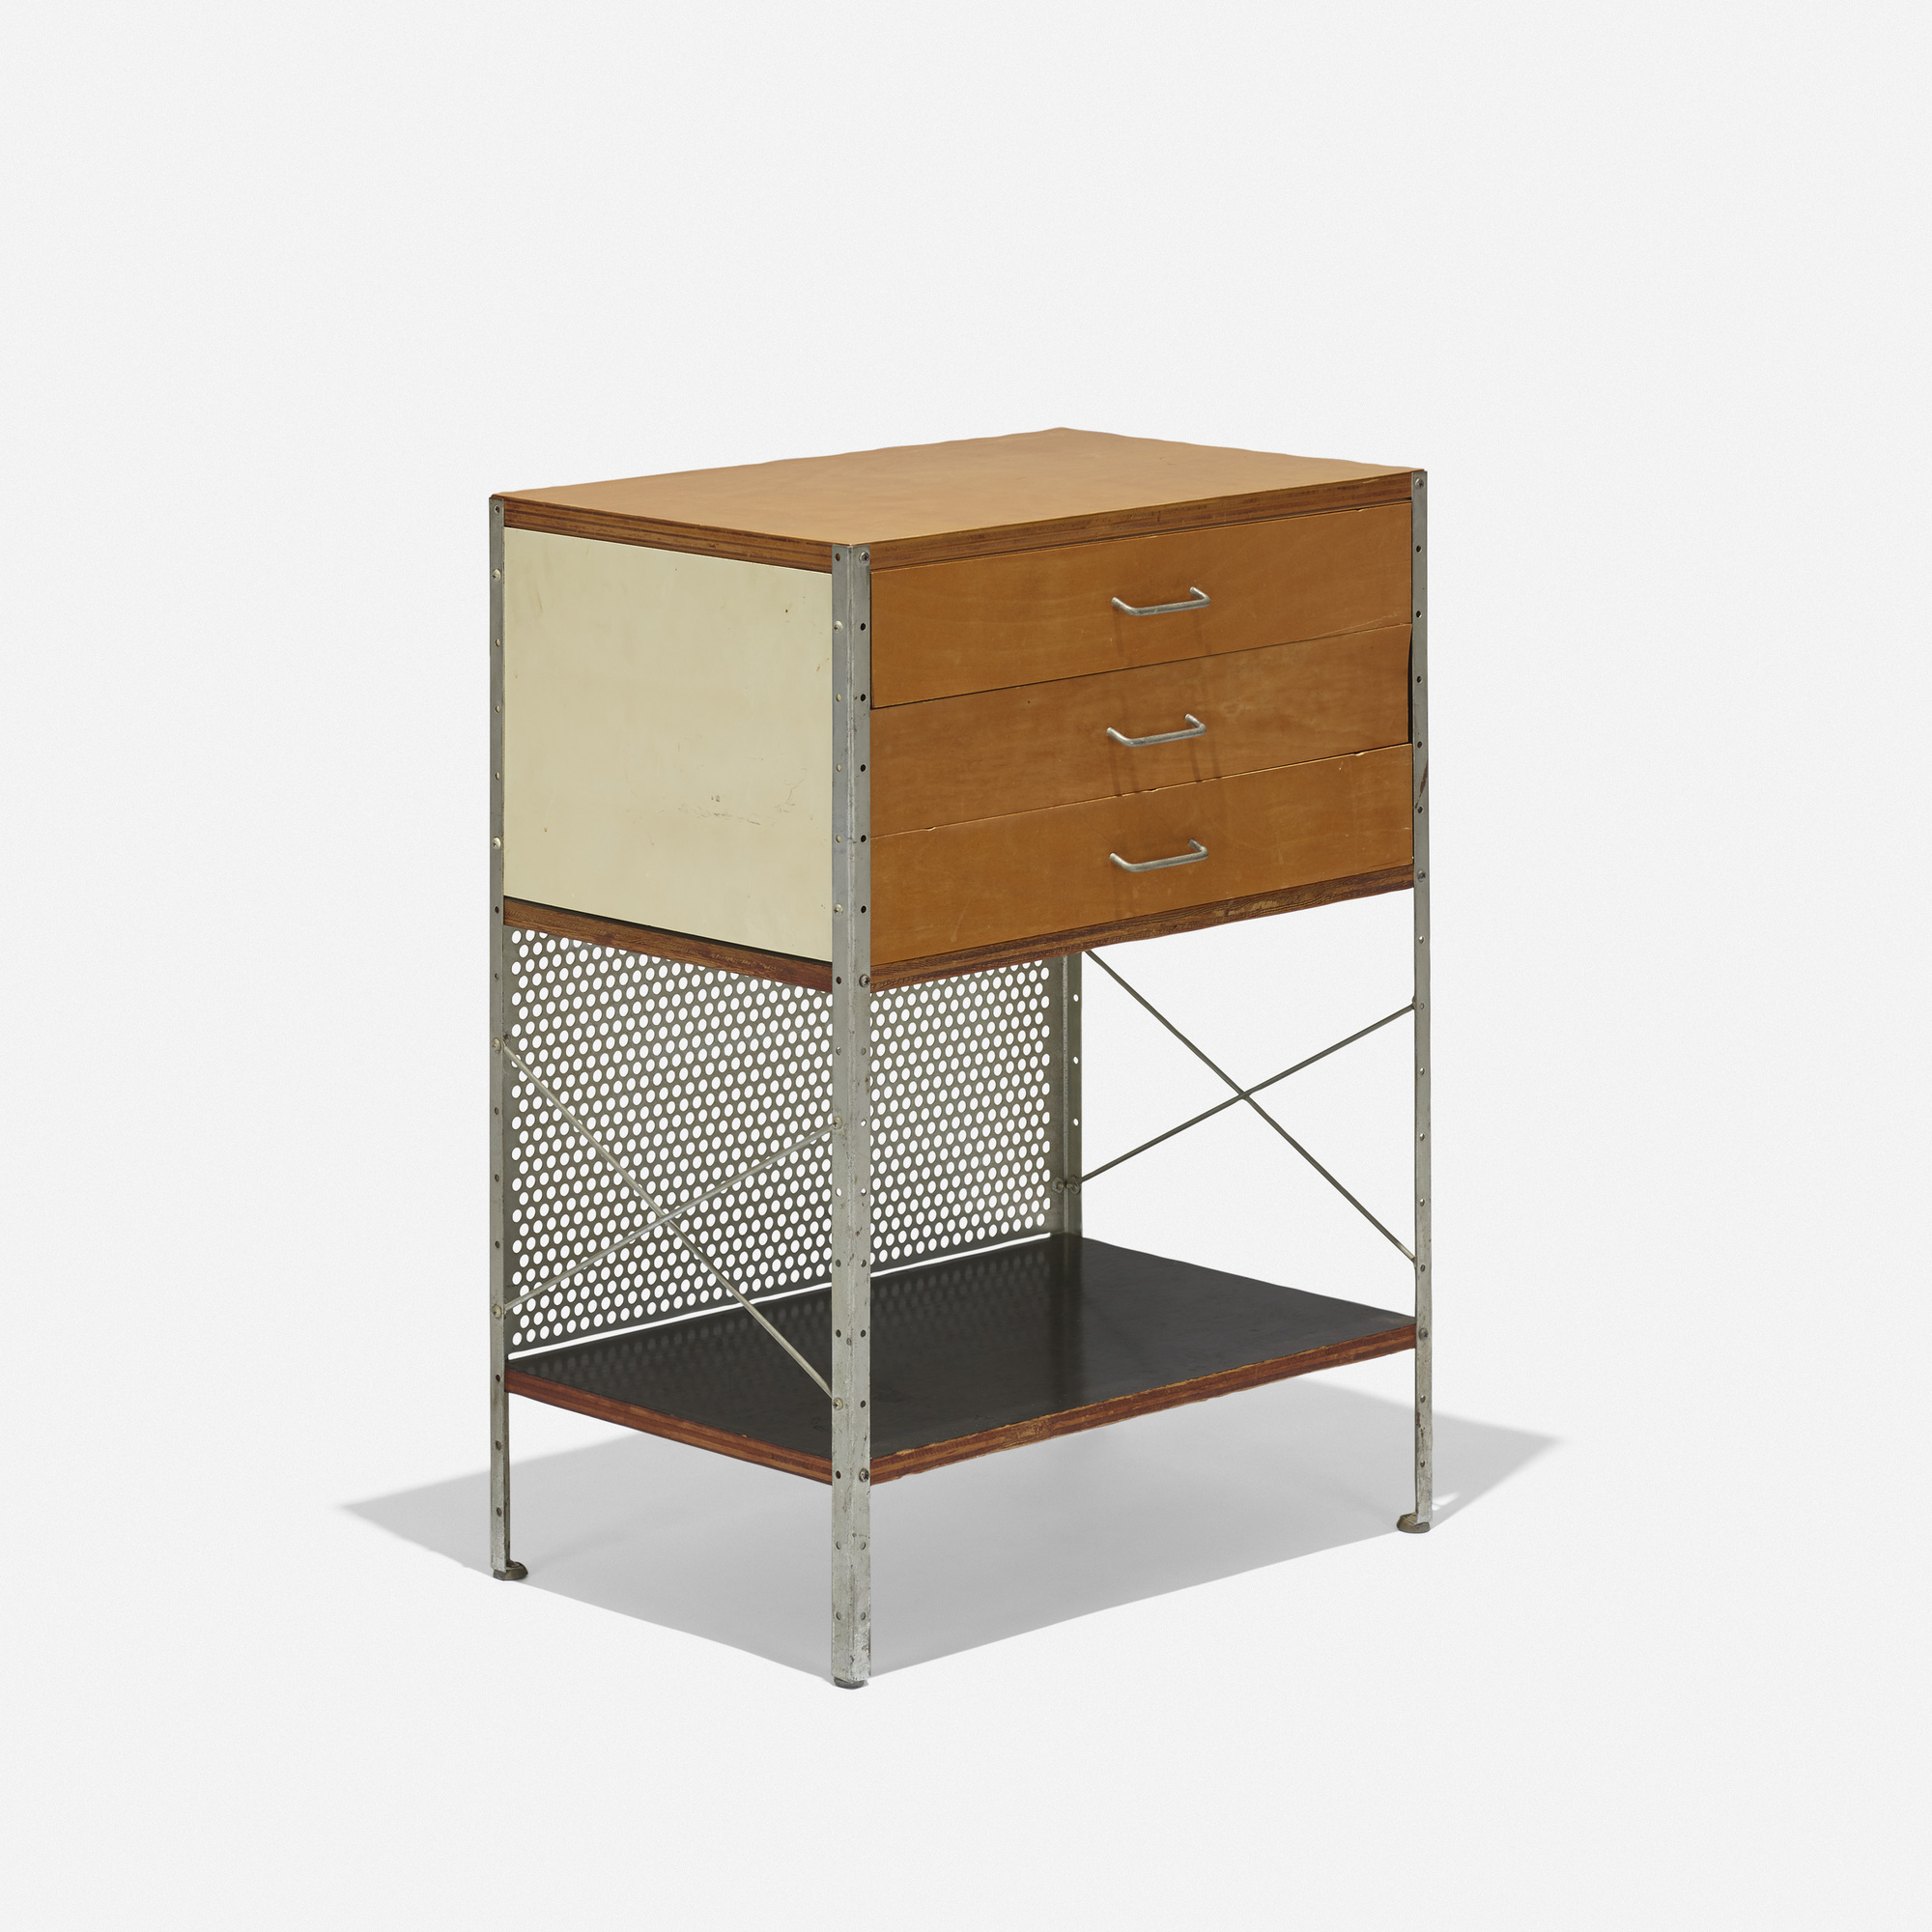 110: Charles and Ray Eames / ESU 270-N (1 of 3)